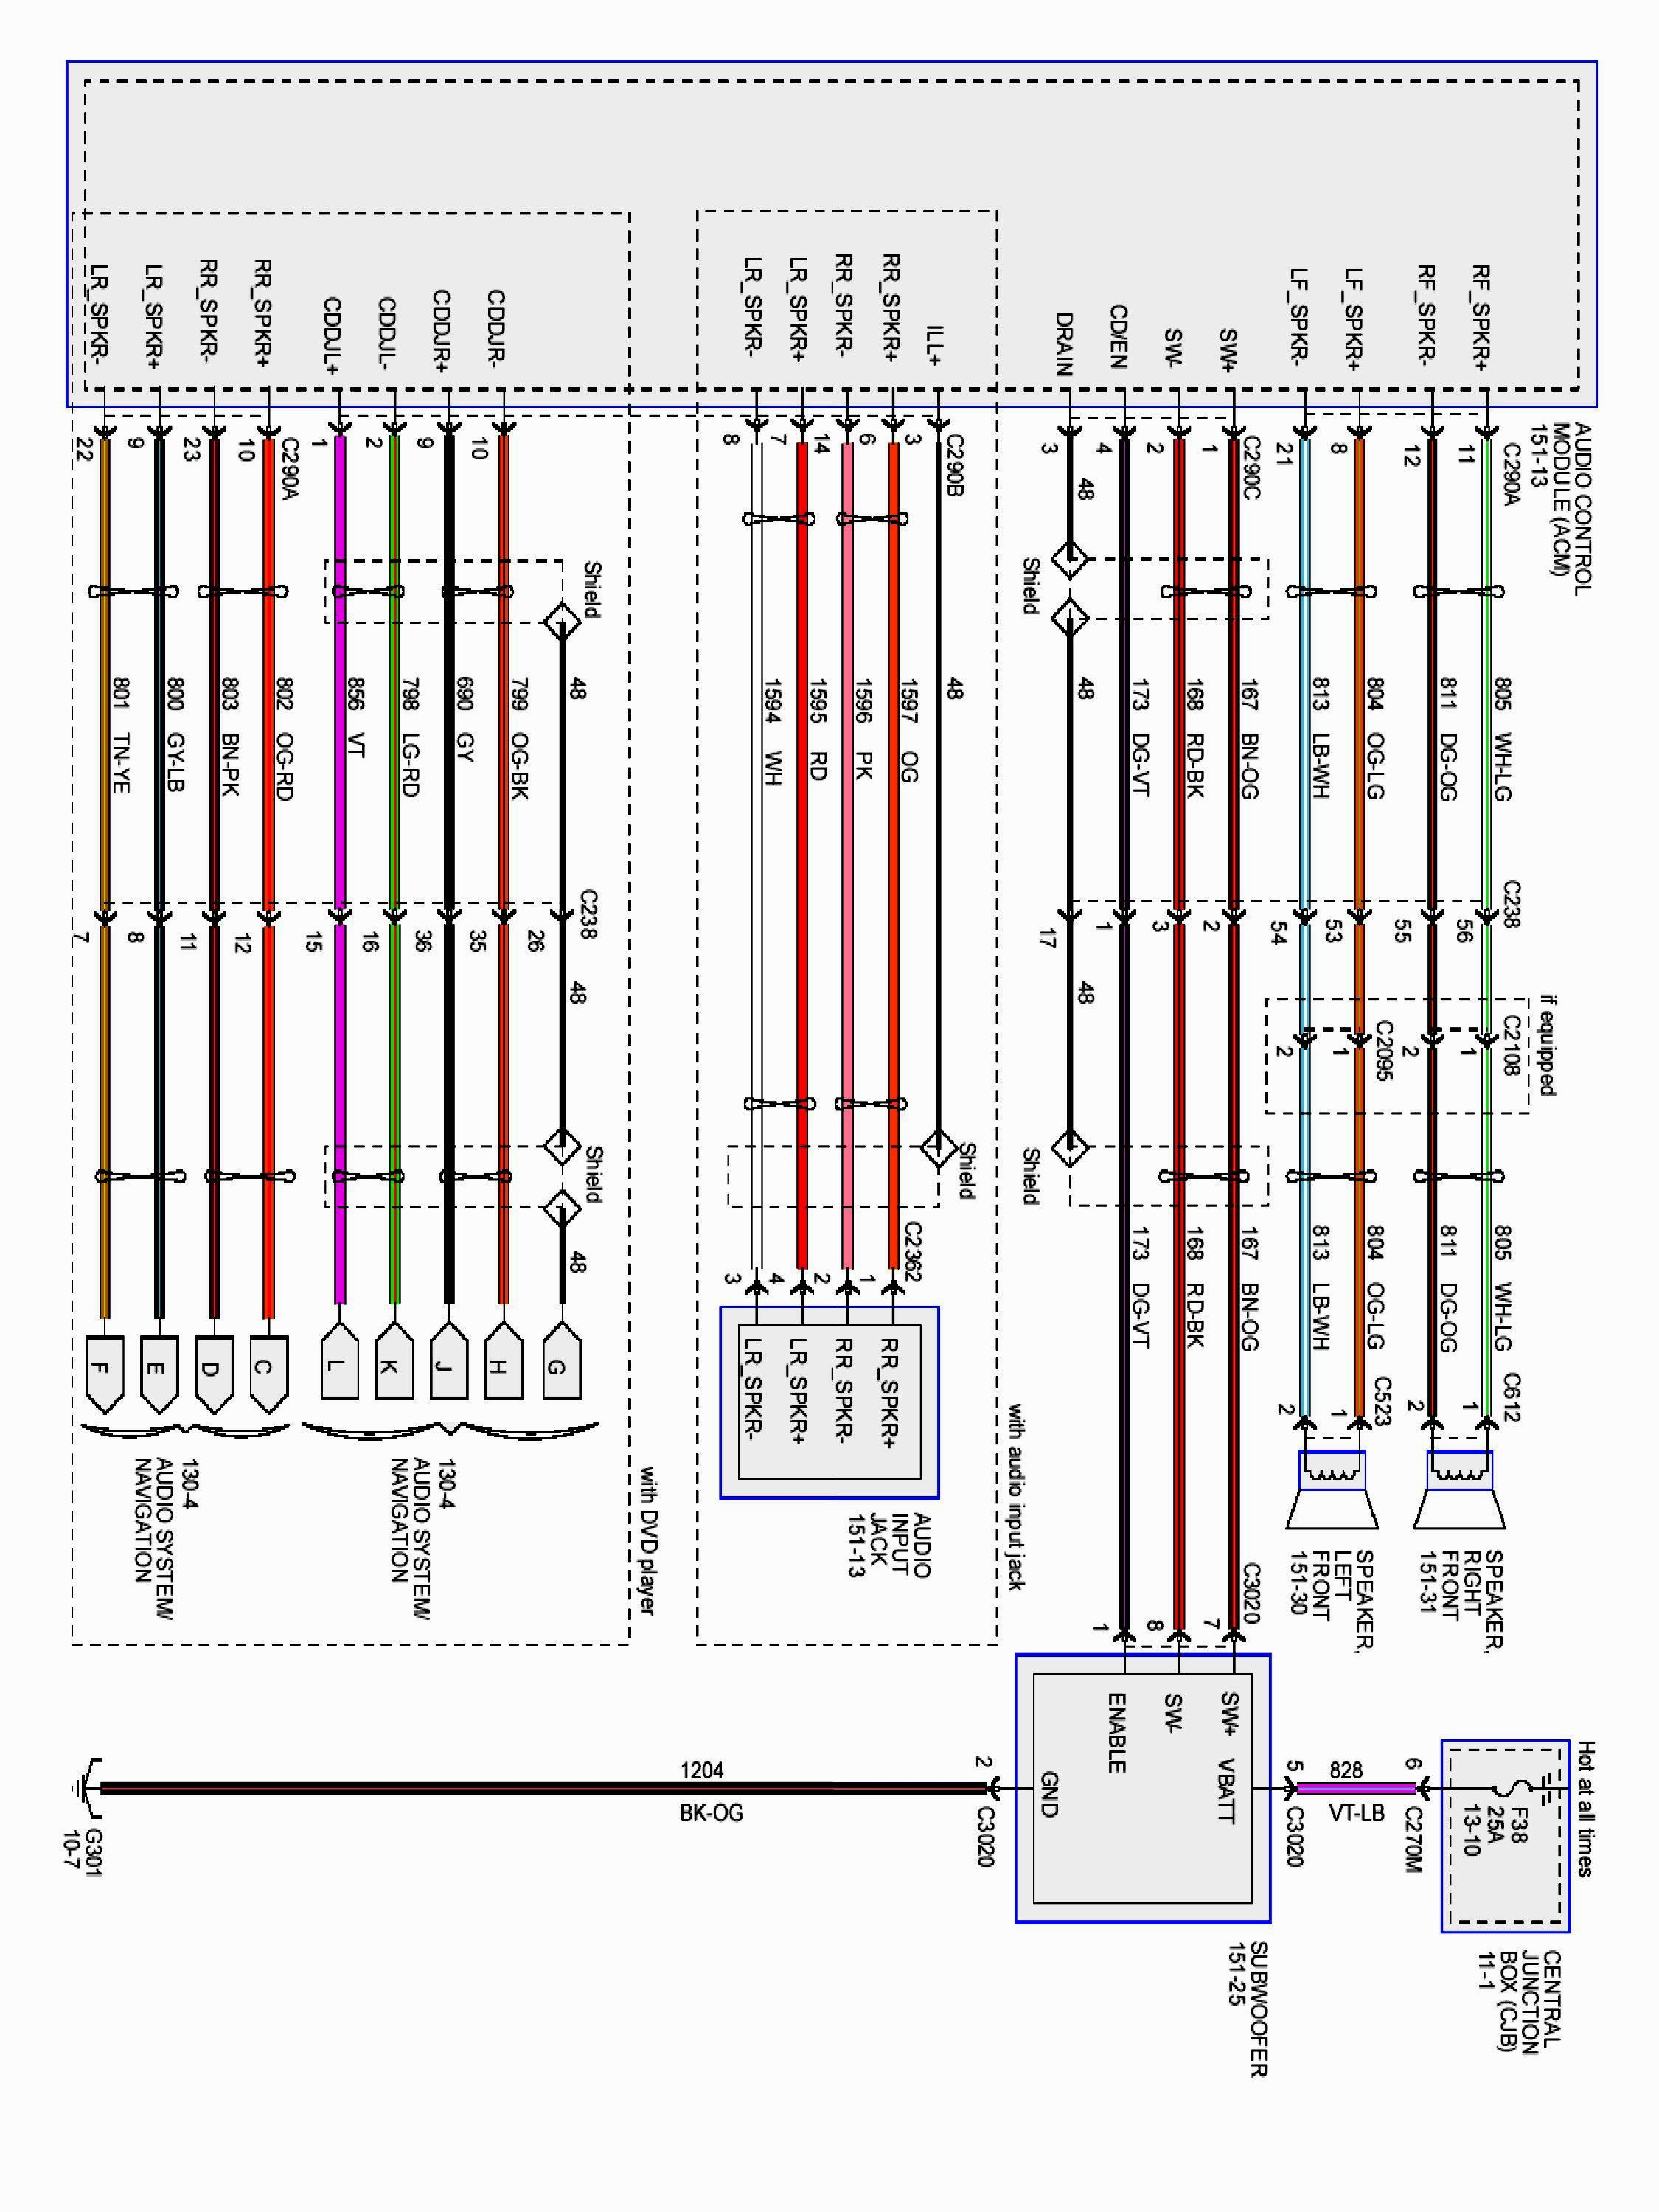 Ford F150 Wiring Diagram 4 2004 Ford F150 Ford Expedition Diagram